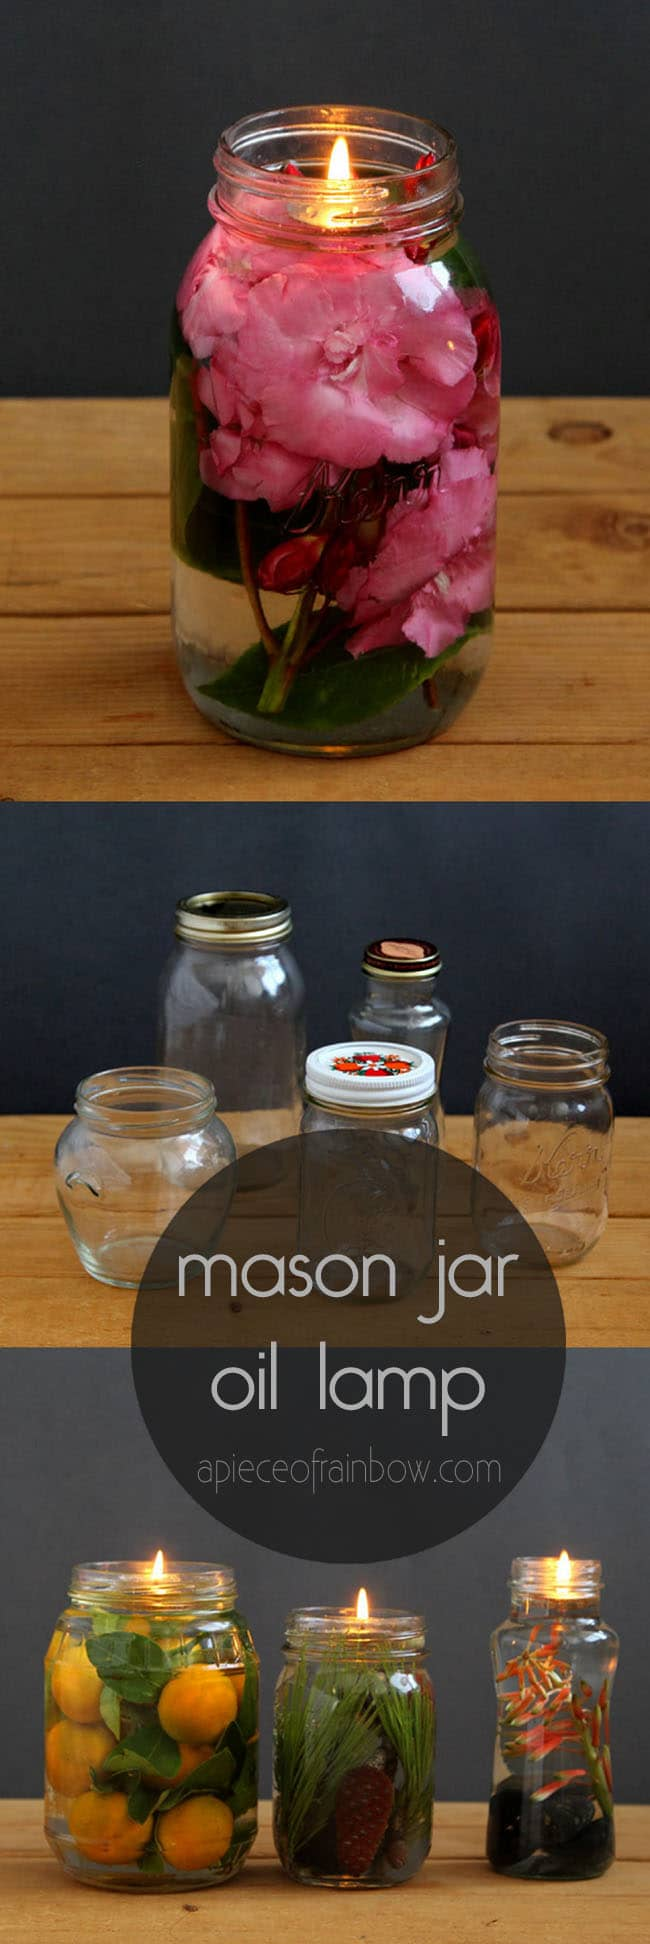 water candles with mason jar, oil candle wicks, and natural elements